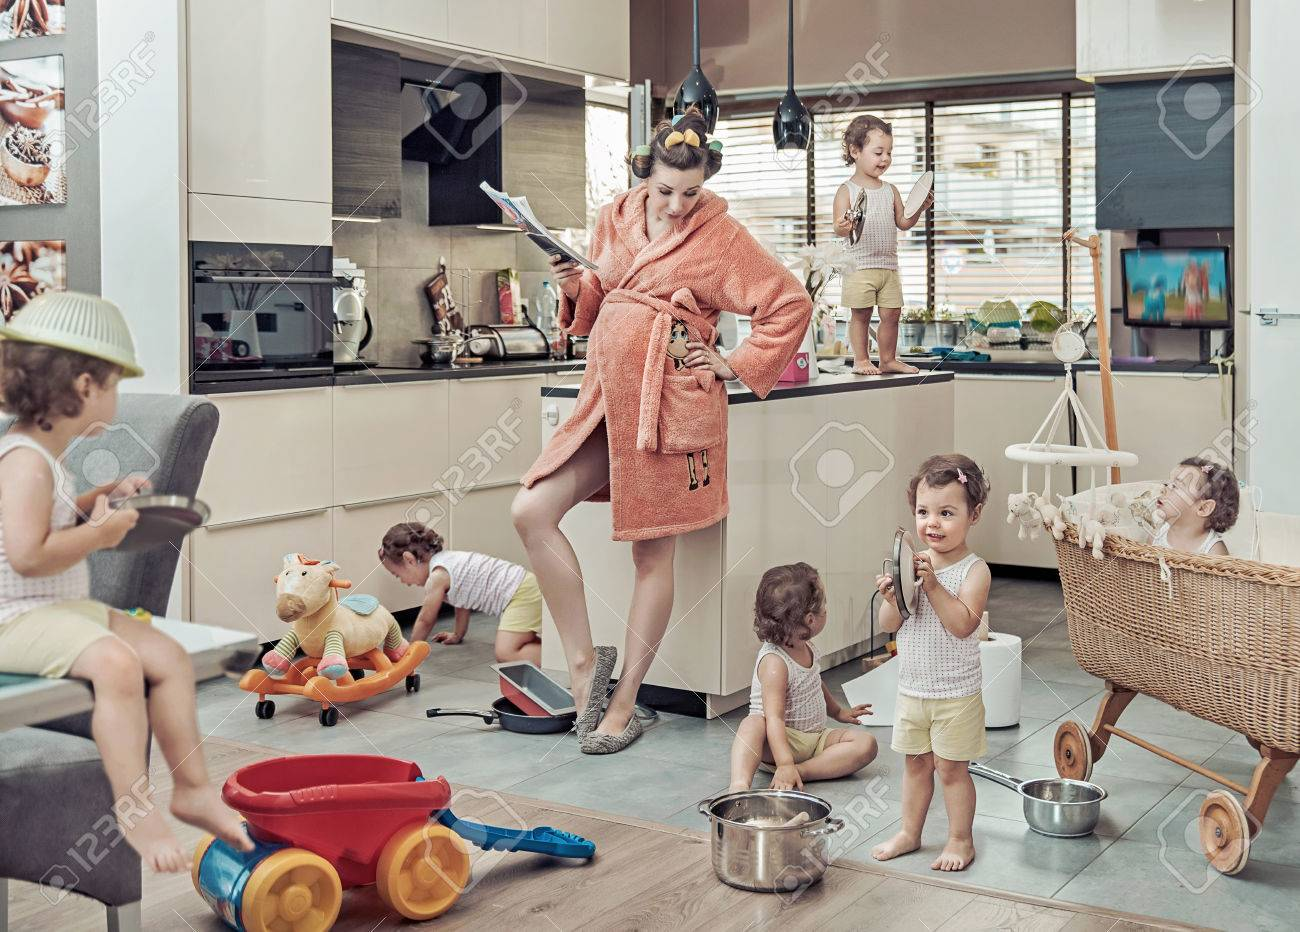 Conceptual image of exhausted mum with her misbehaving child Archivio Fotografico - 67518198